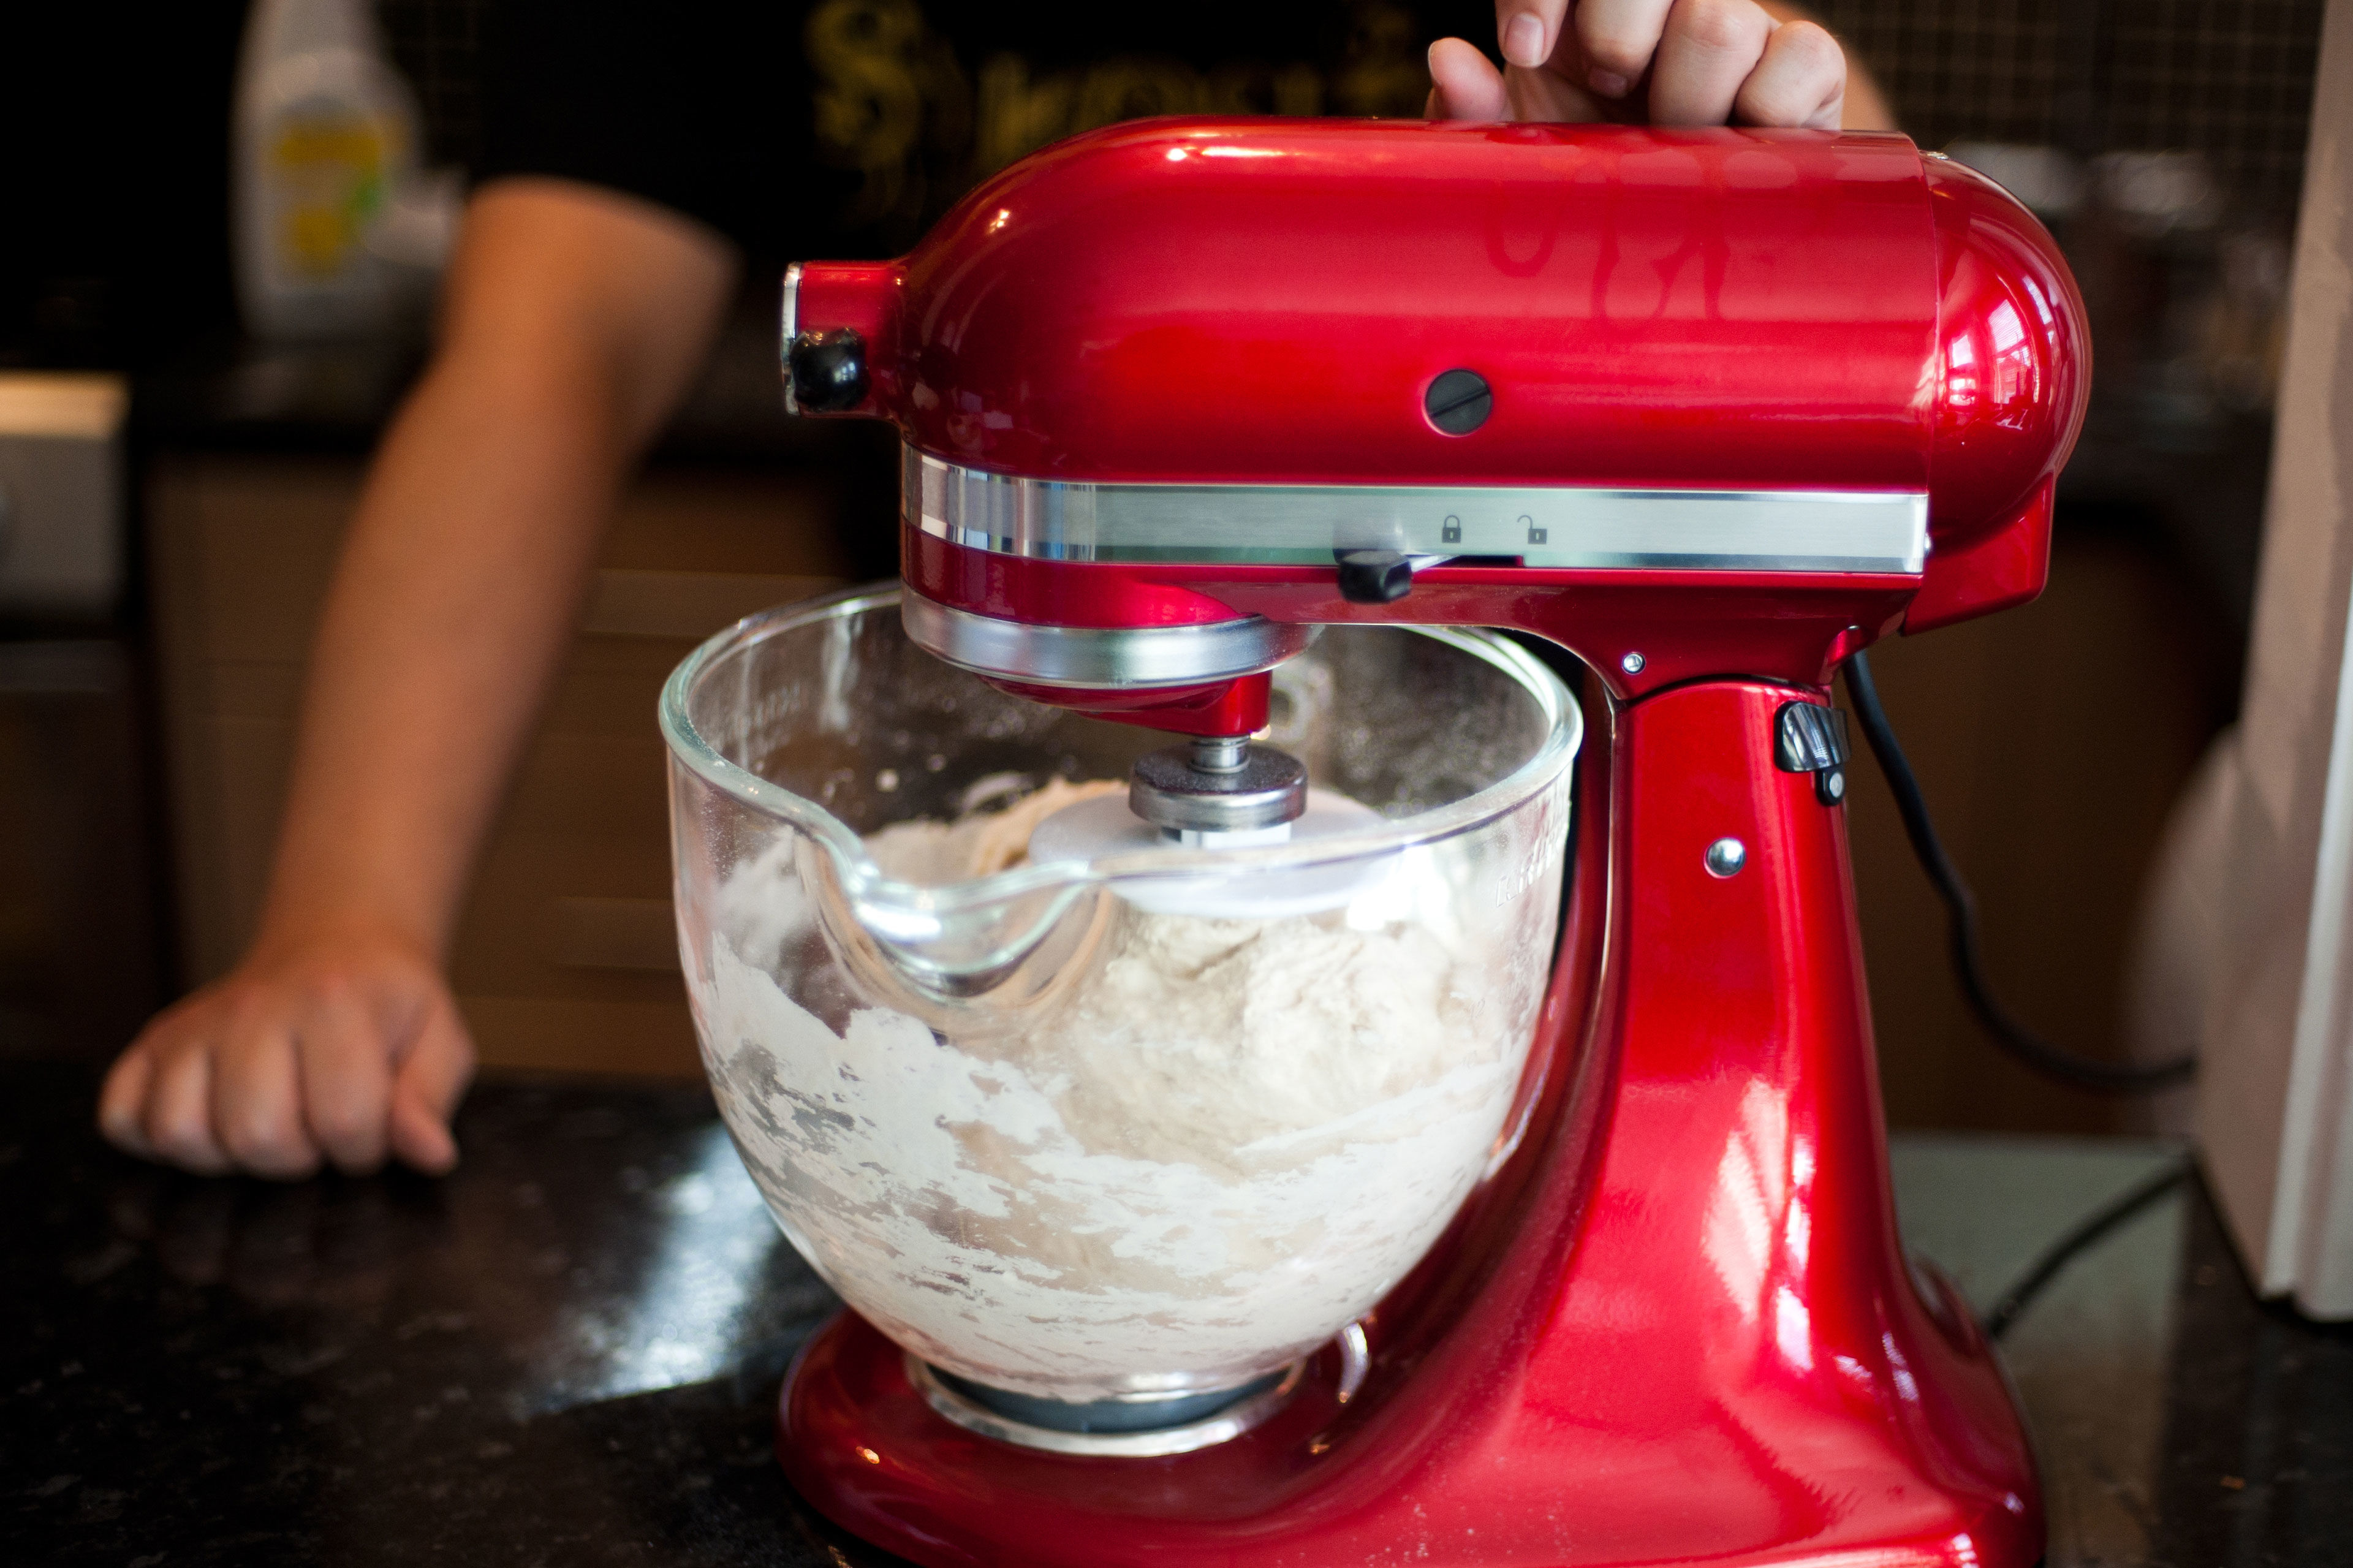 How to Properly Clean Your Stand Mixer So It Lasts Through the Holiday Baking Season